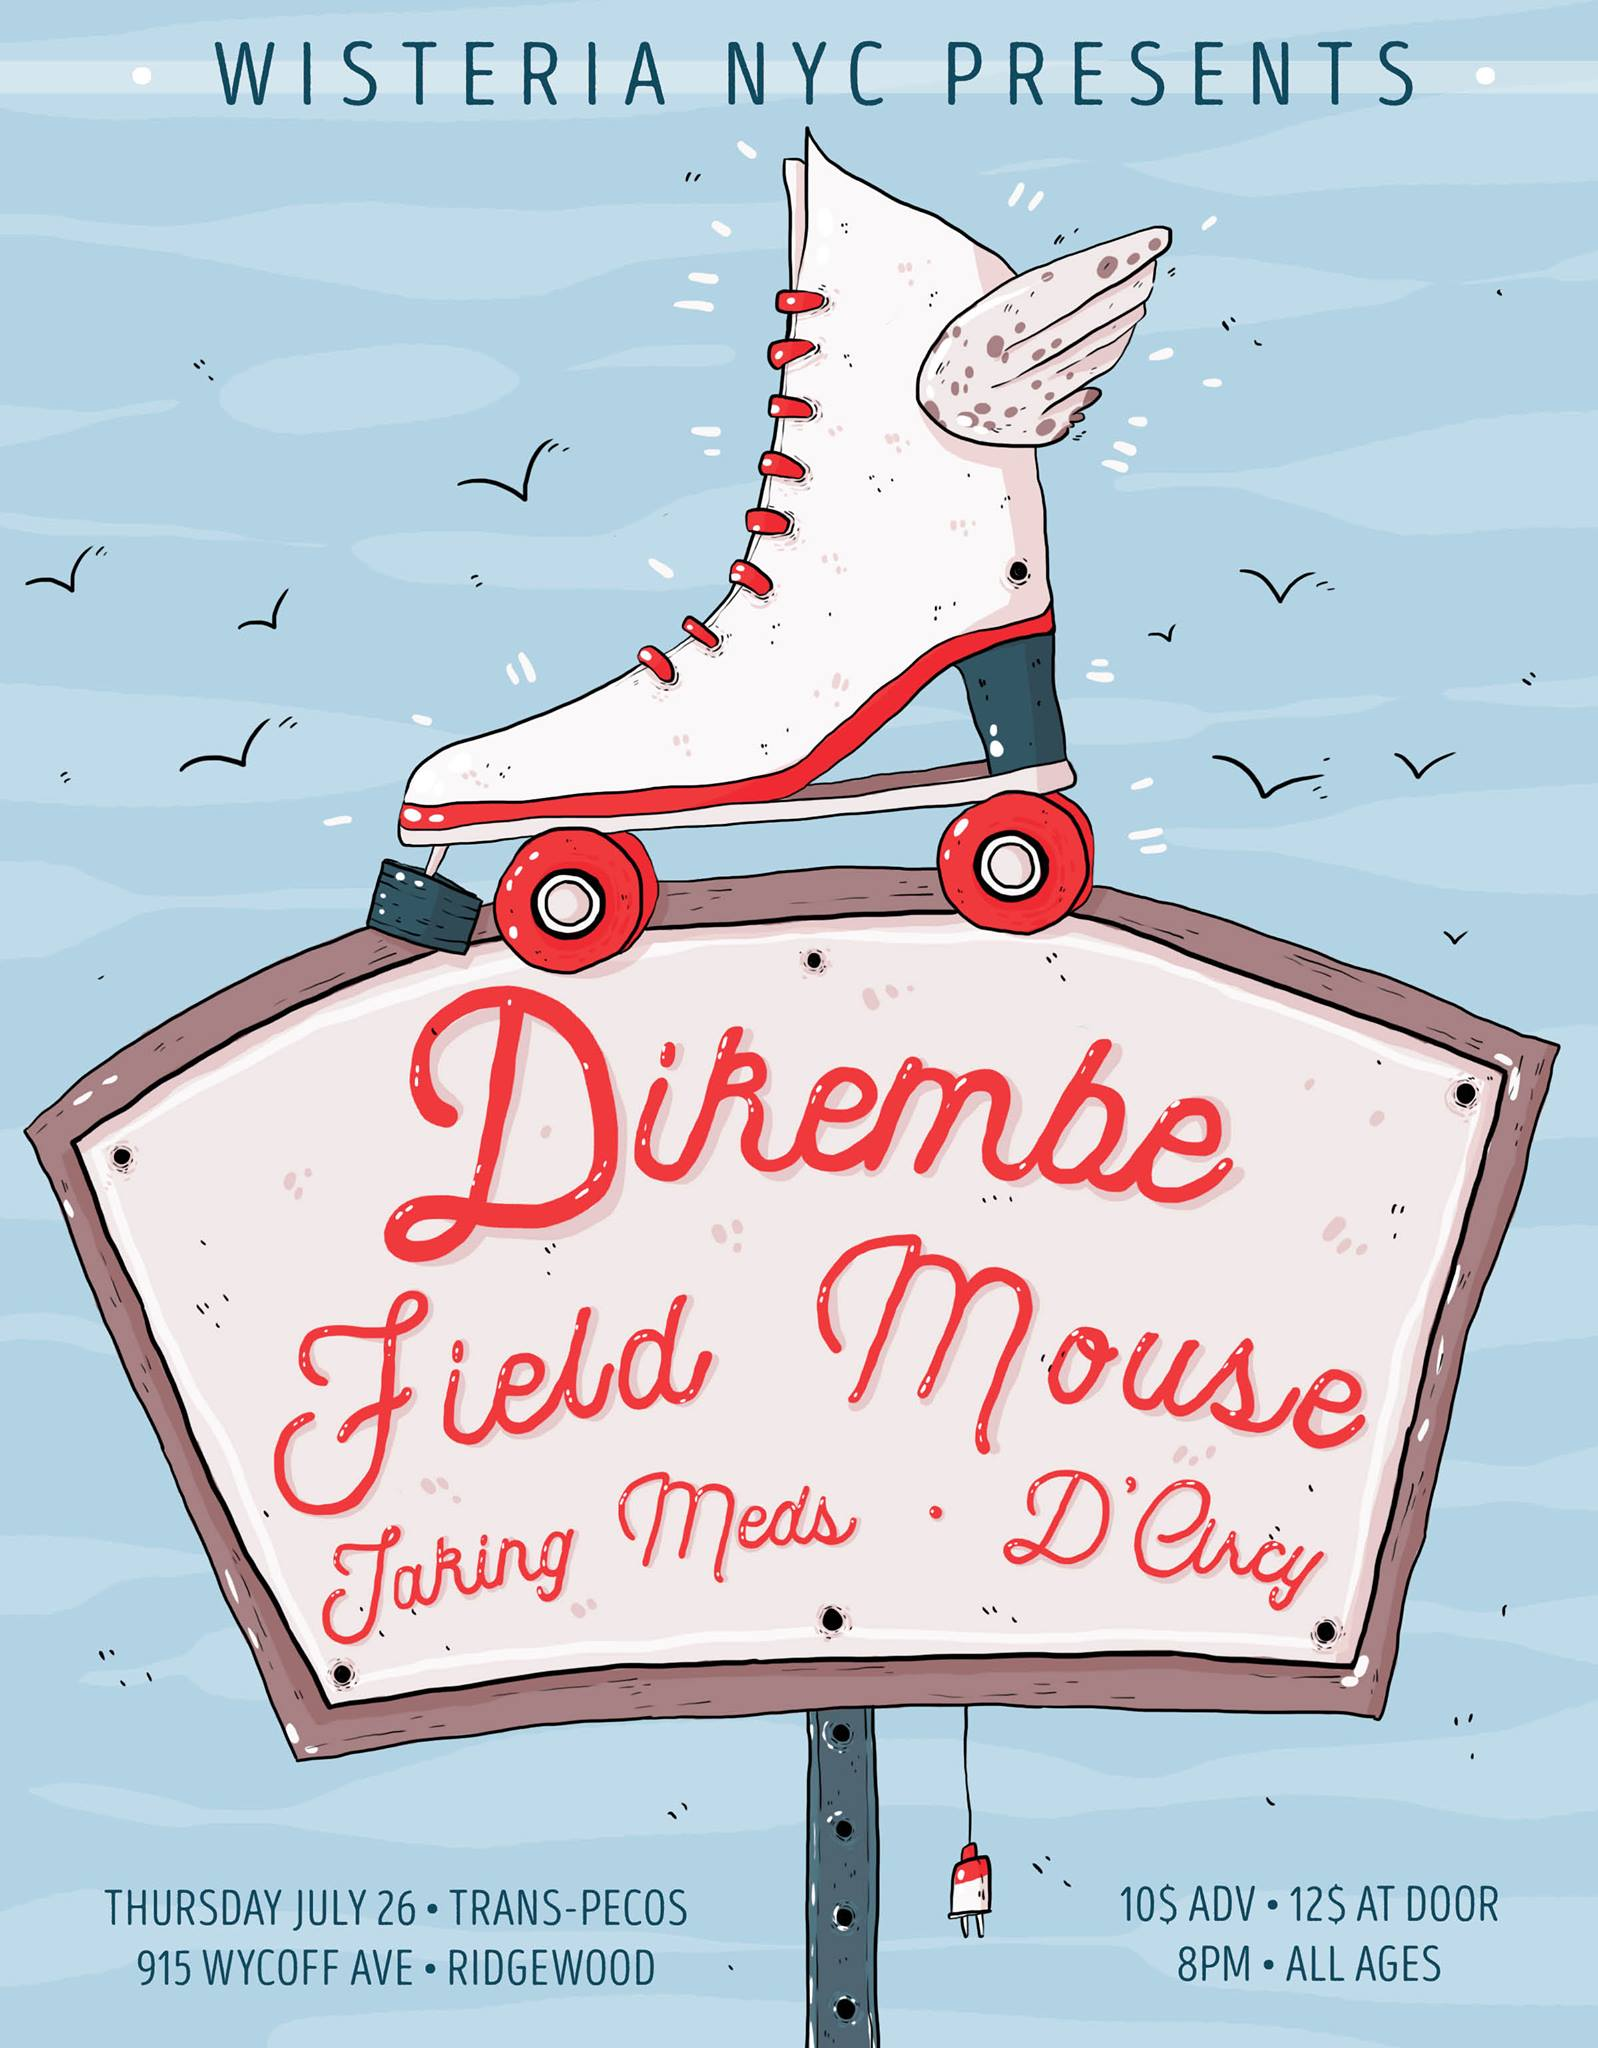 Wisteria NYC presents...   Dikembe / https://dikembe.bandcamp.com/   Field Mouse / https://fieldmouse.bandcamp.com/   Taking Meds / https://takingmeds.bandcamp.com/   d'arcy / https://darcytheband.bandcamp.com/   Thursday, July 26 8PM Doors  $10 adv / $12 DOS All Ages   Trans-Pecos  915 Wyckoff Ave, Ridgewood  Flyer by  Brittany Naundorff !